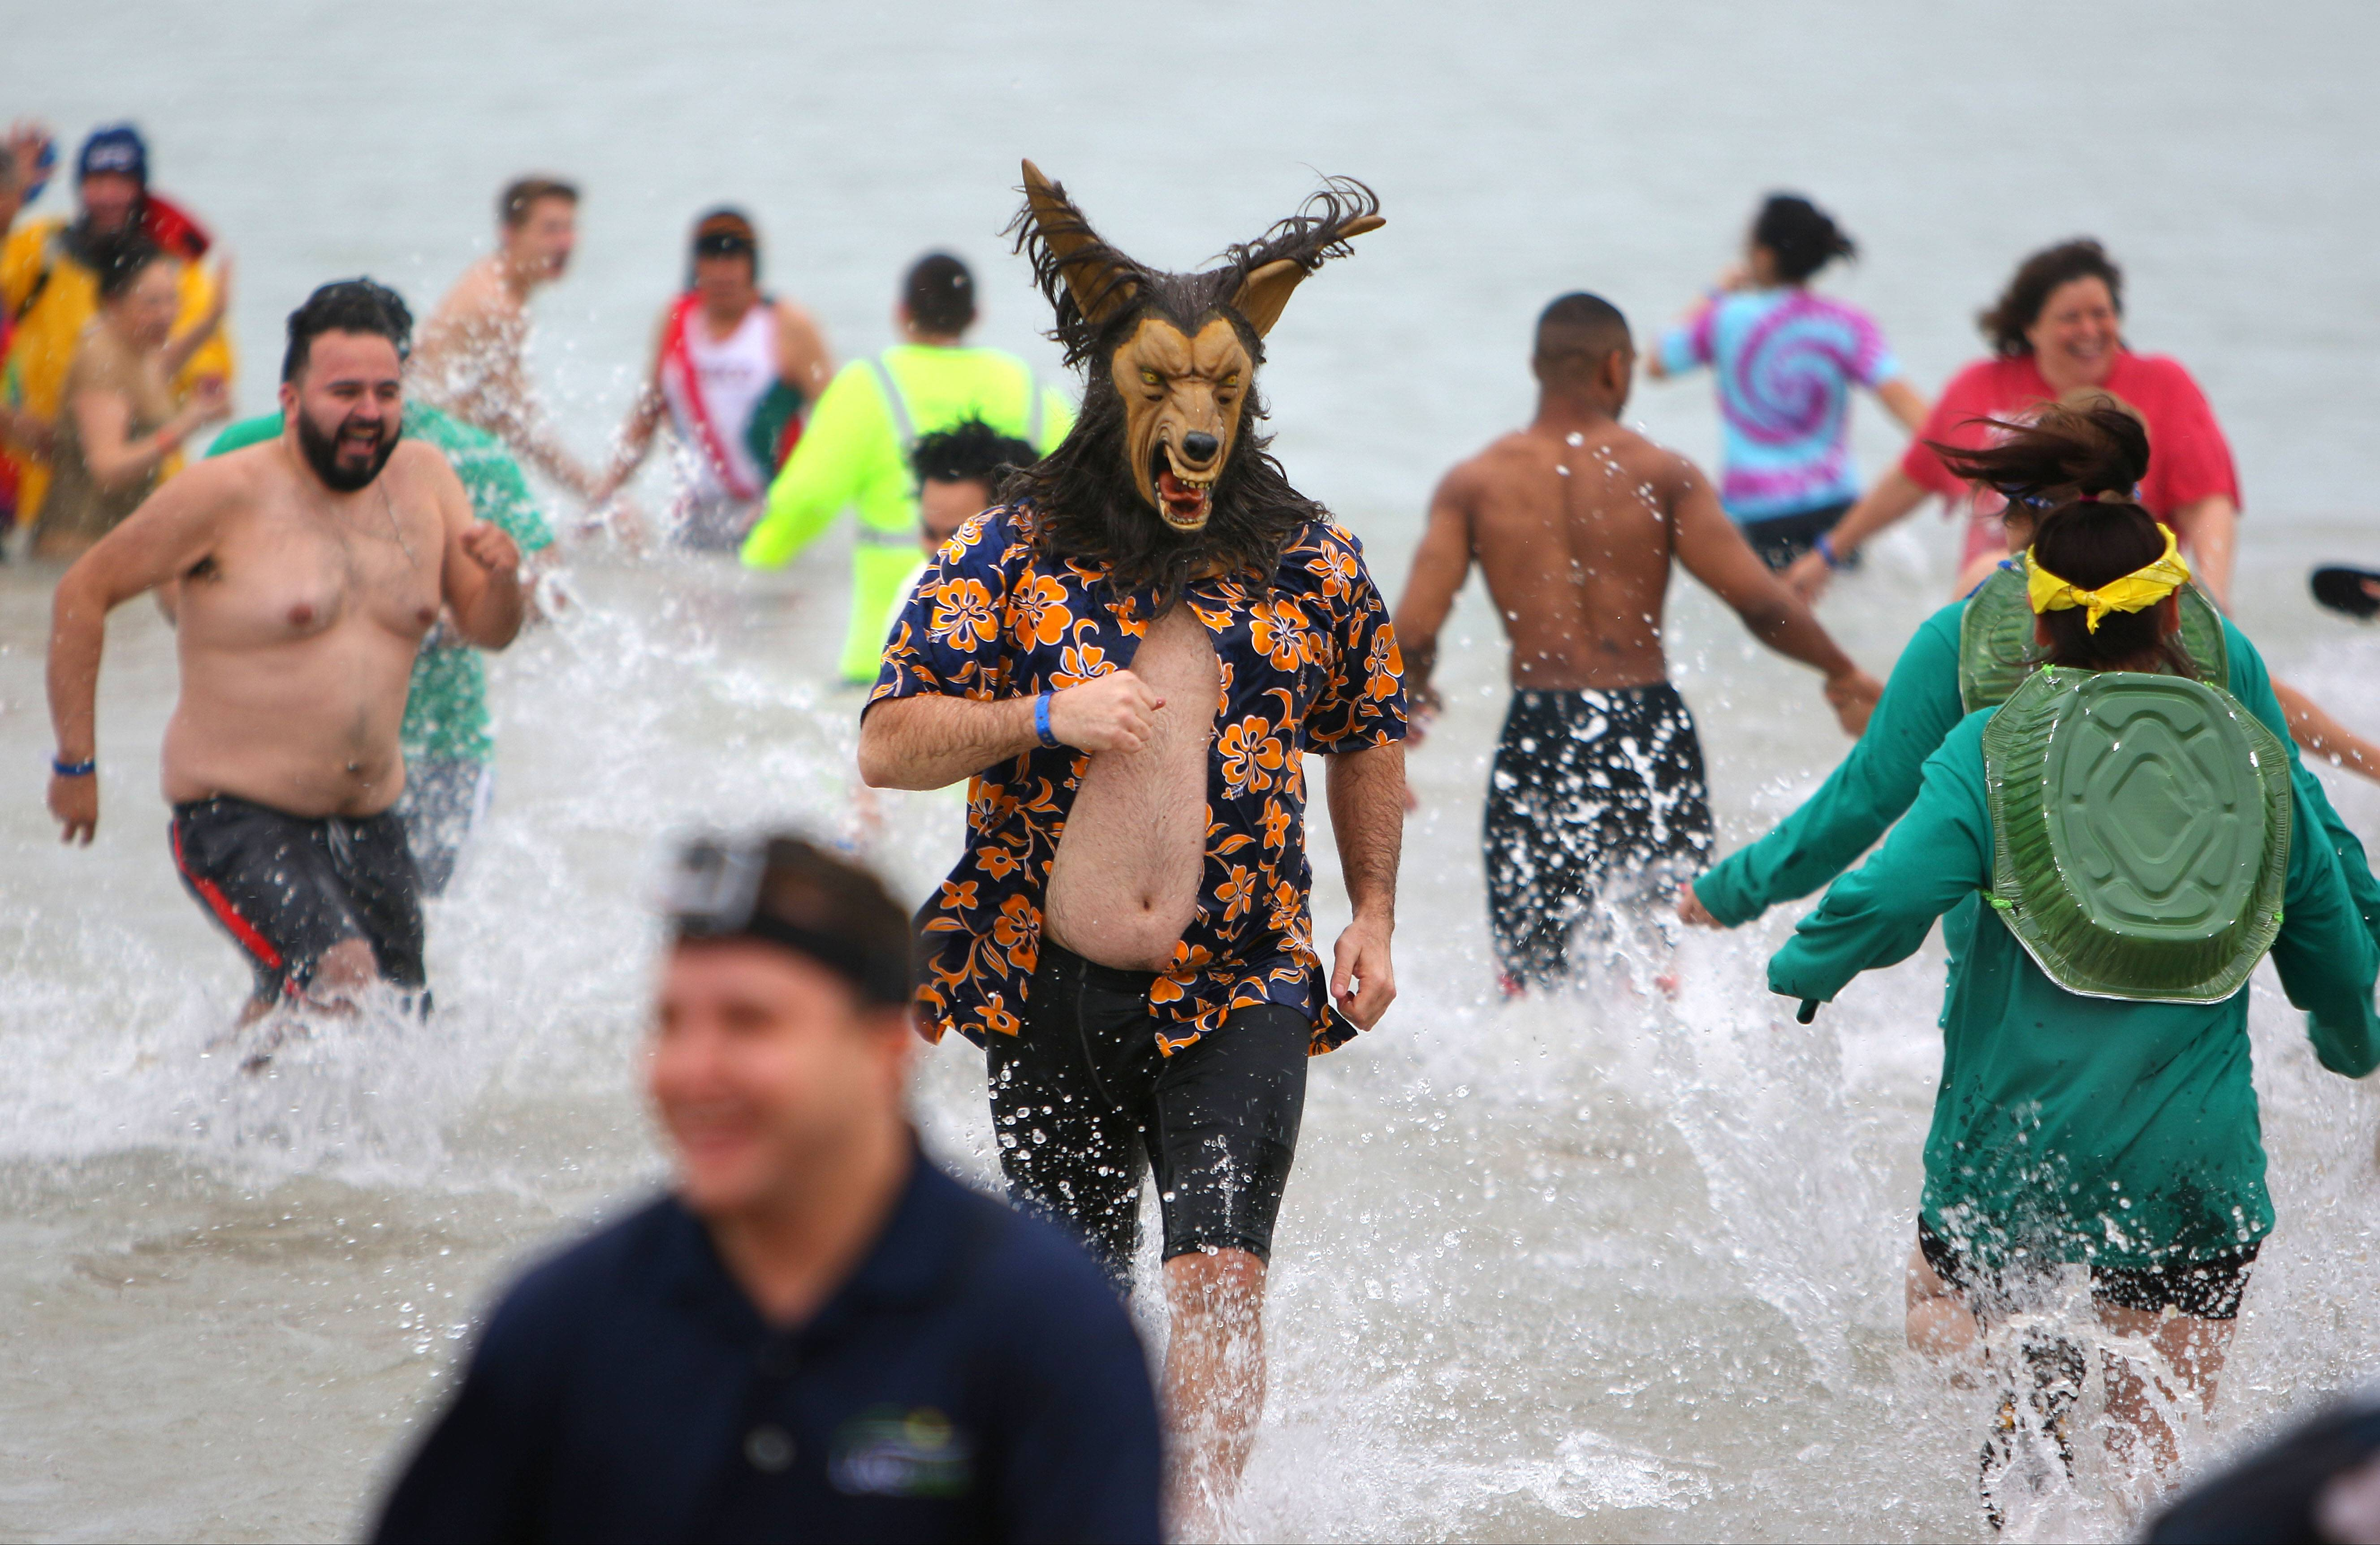 People dressed in costumes brave the cold waters of Lake Michigan during the 17th Annual Polar Bear Plunge Friday in Waukegan.